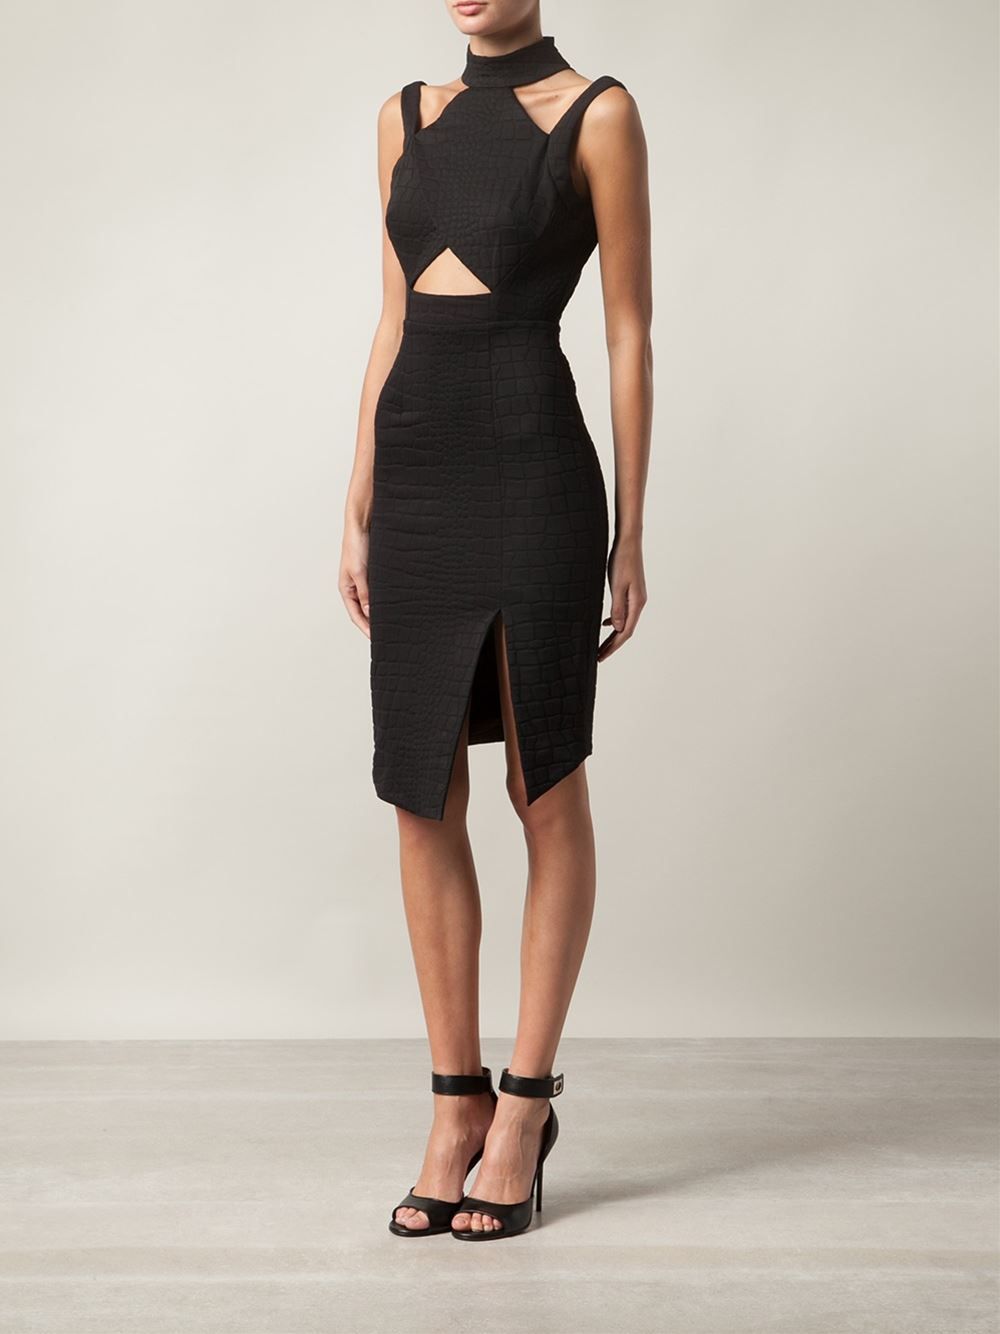 cut out sleeve ribbed dress - Black Jonathan Simkhai VEE25tz7c